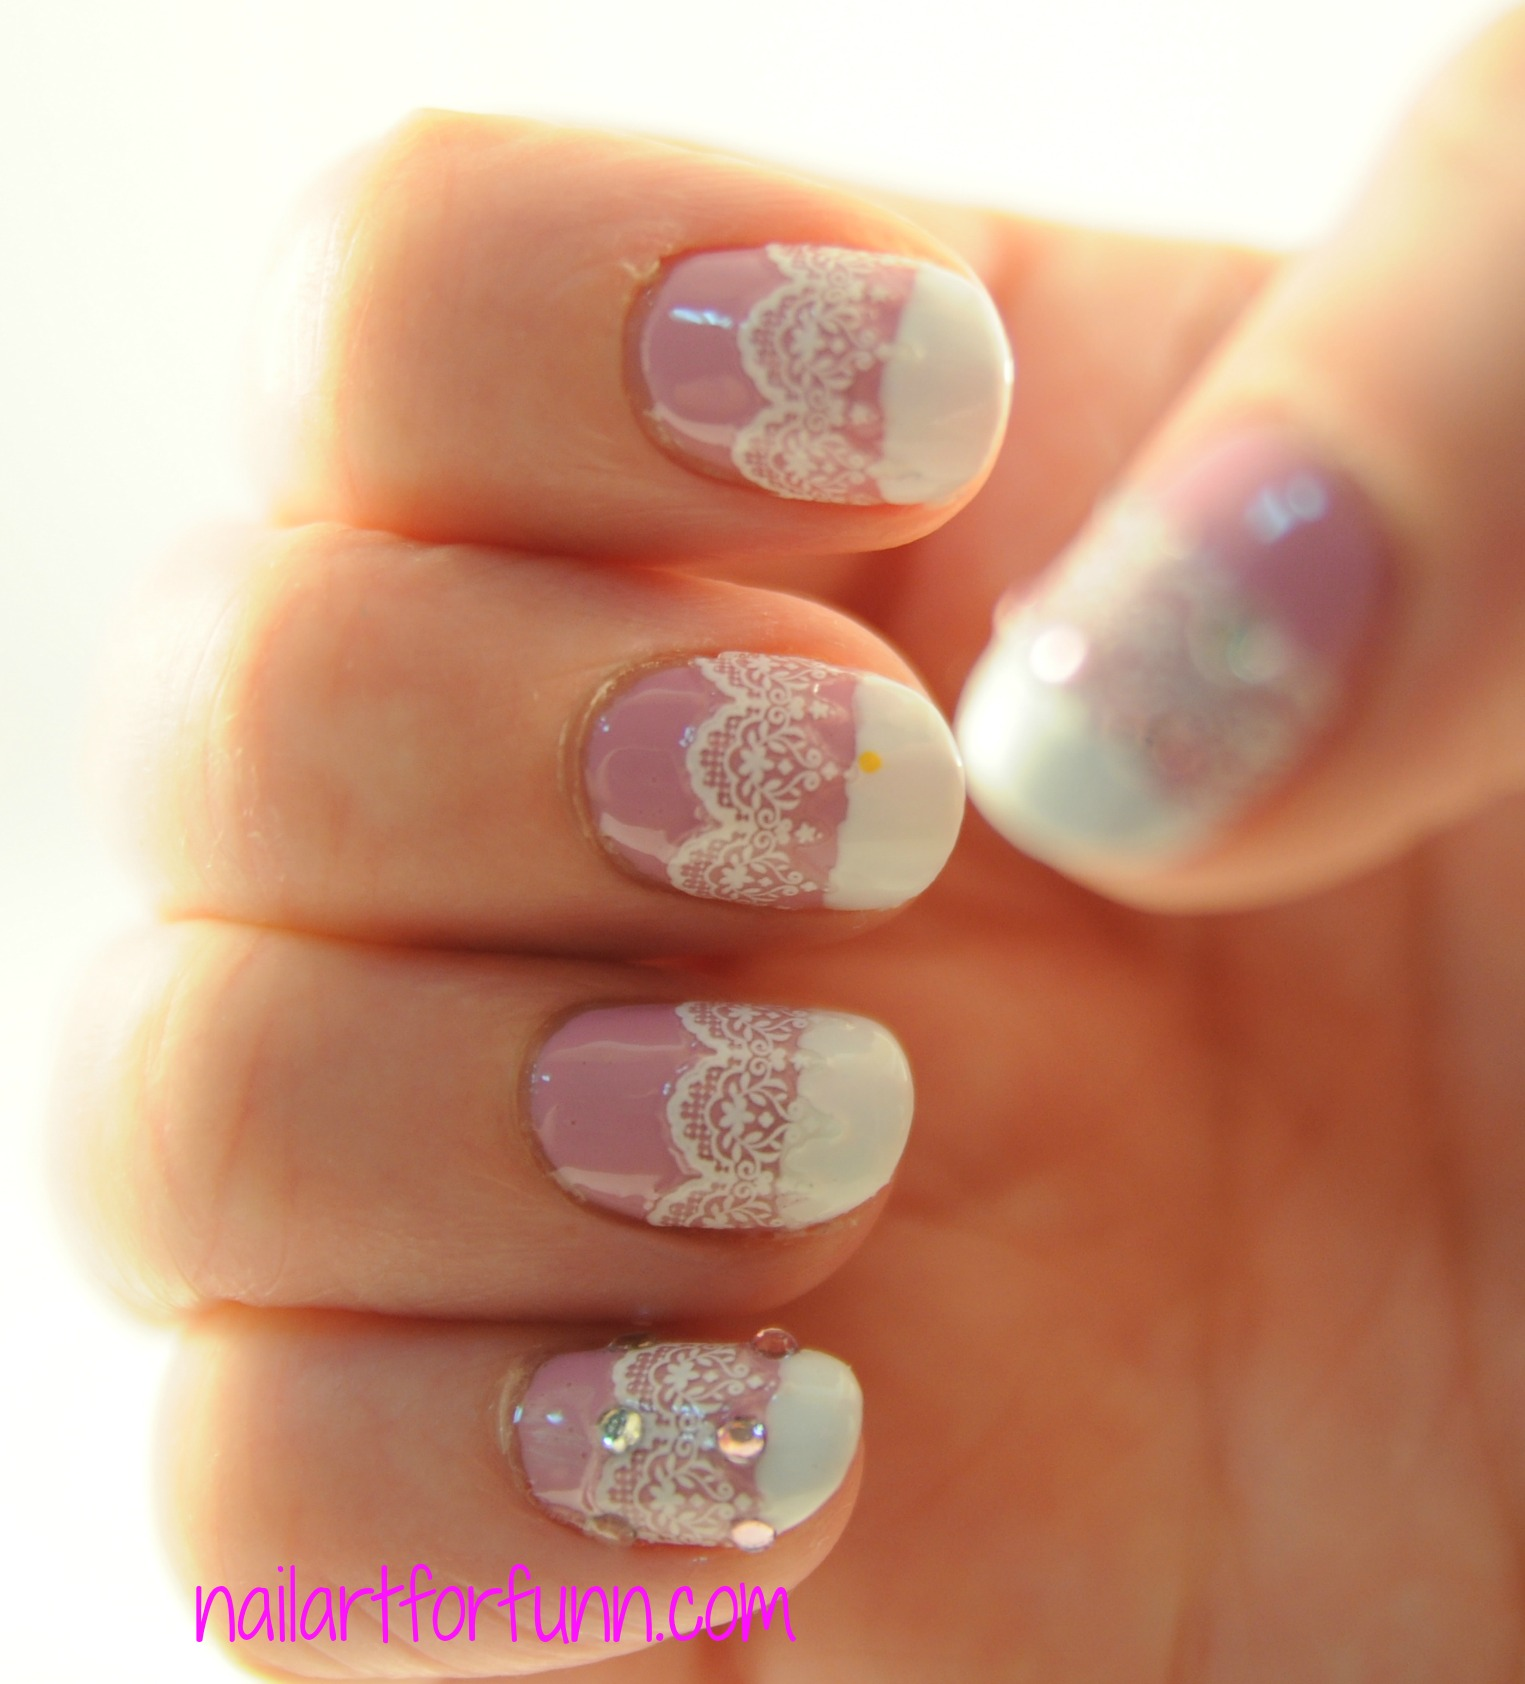 Lilac Leather | Nailart for funn!